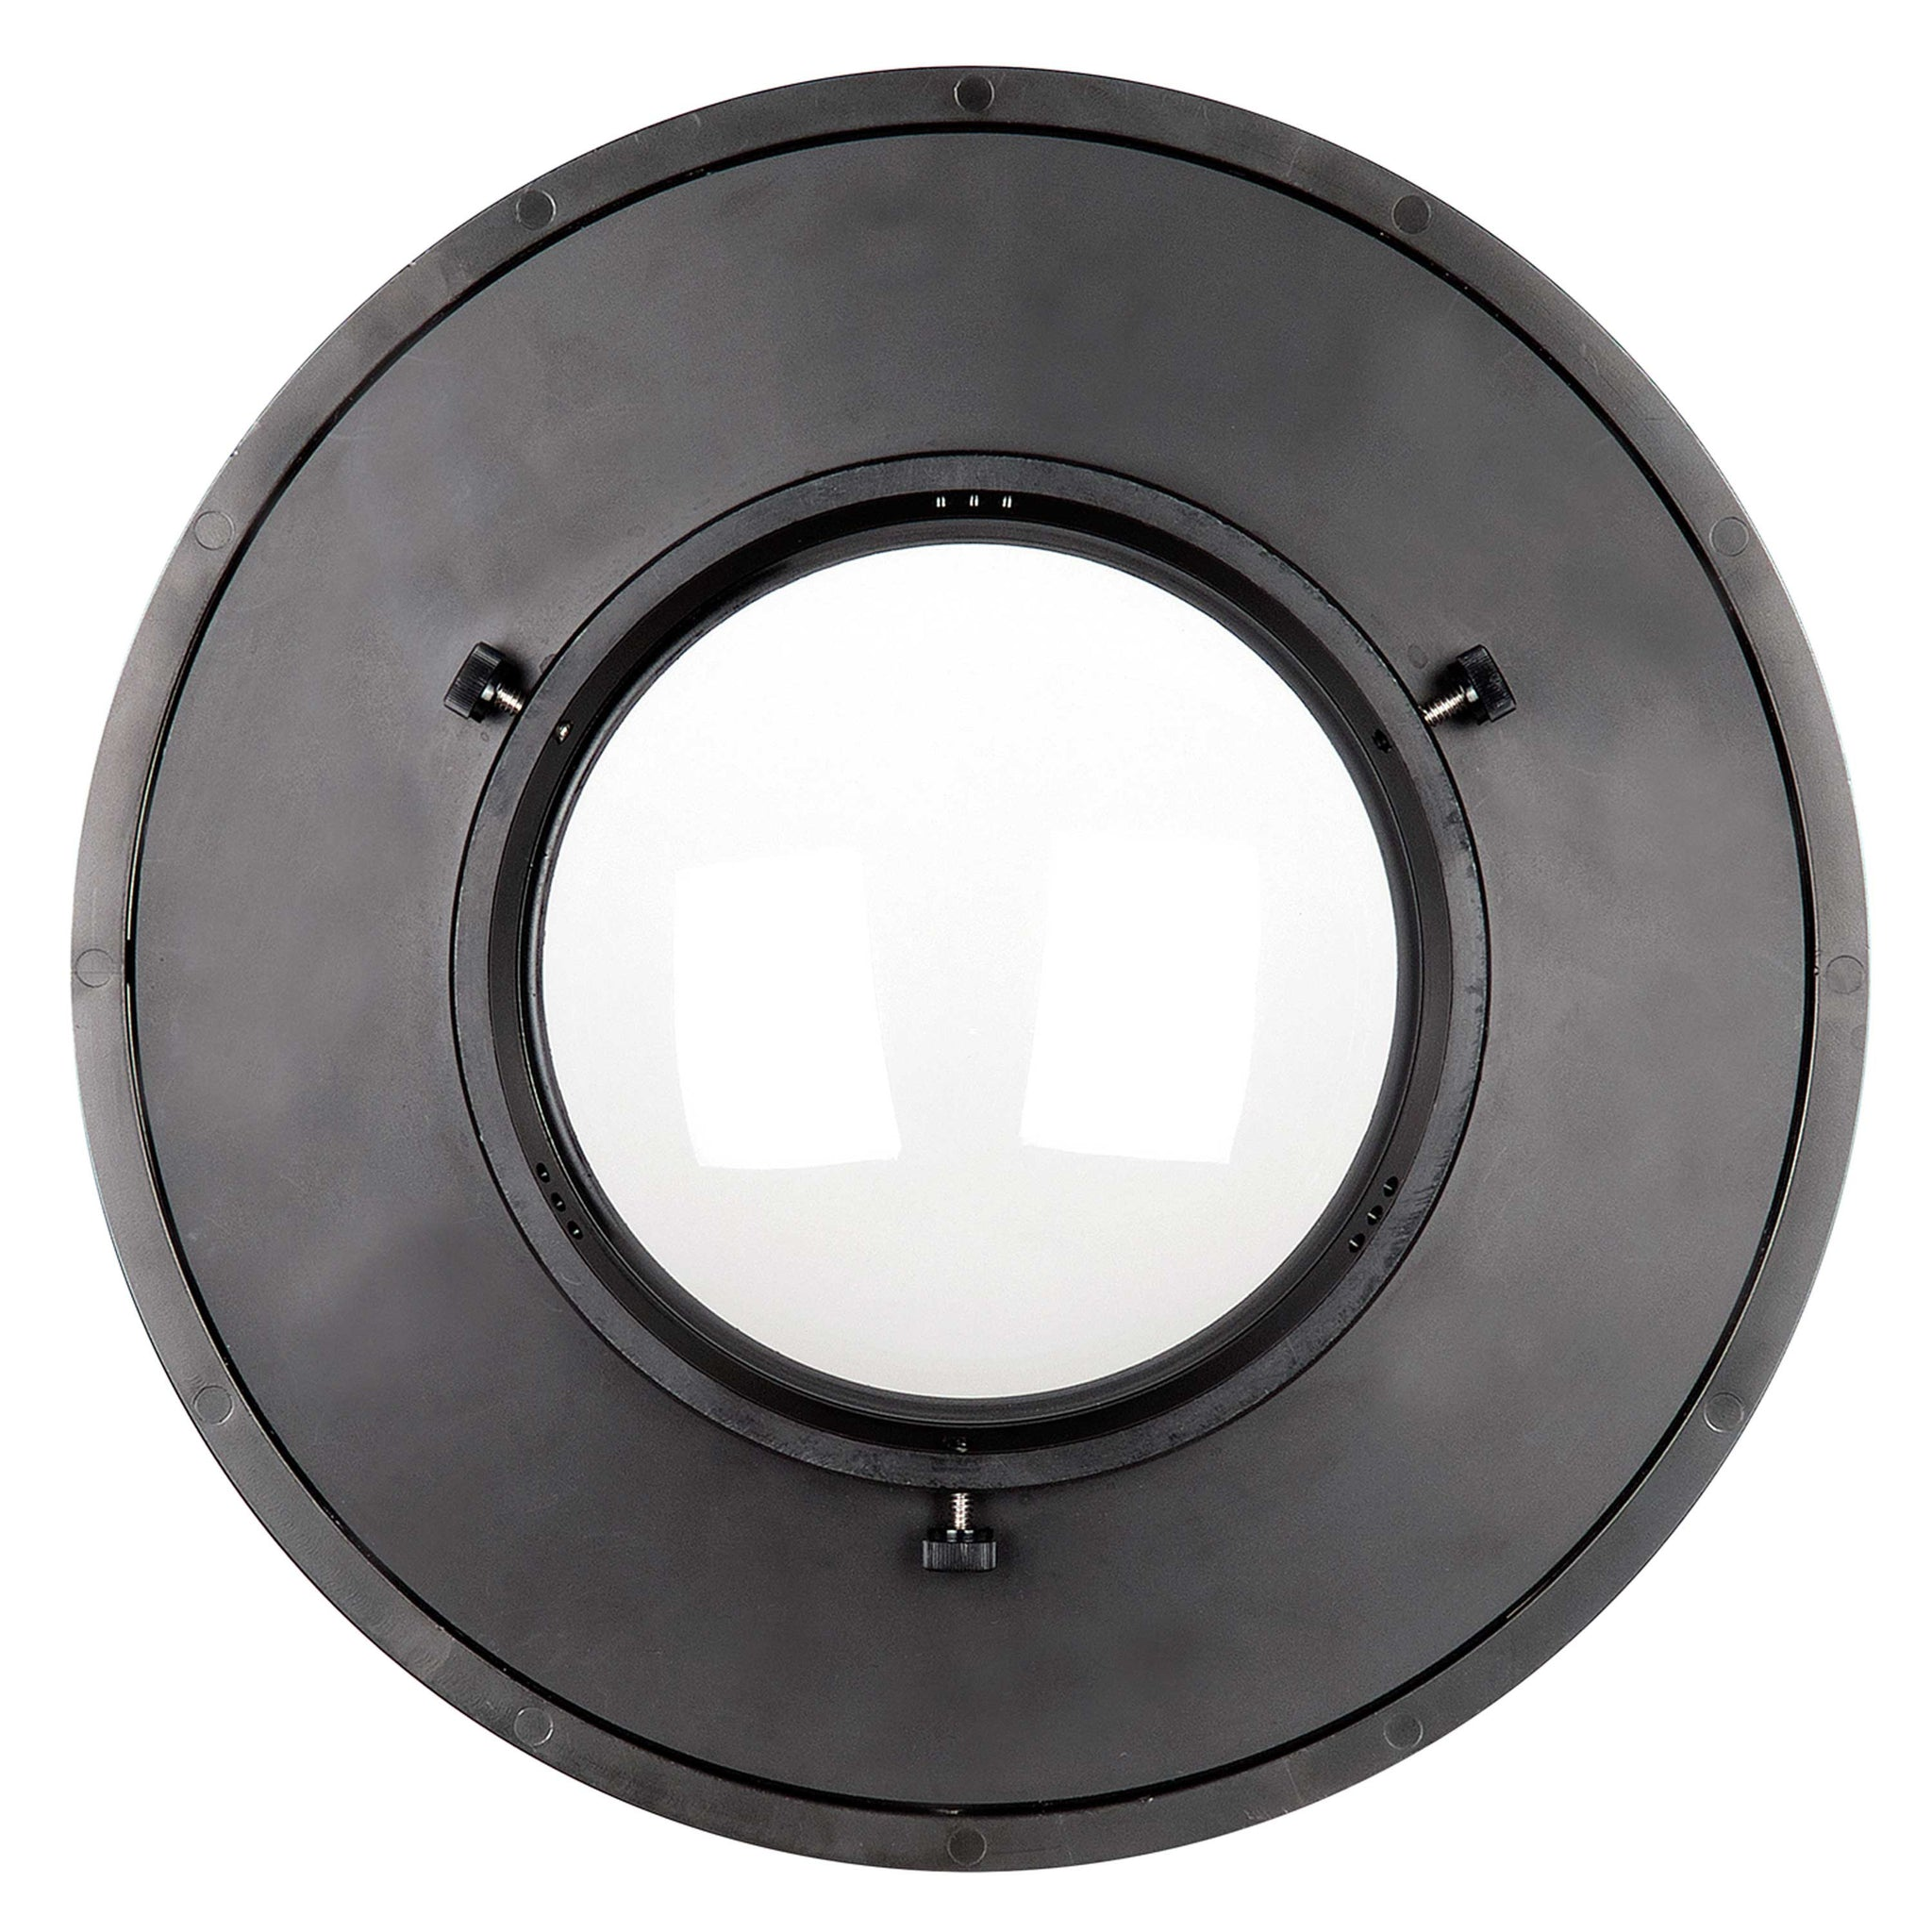 Ikelite DL 8 inch Dome Port - 75340